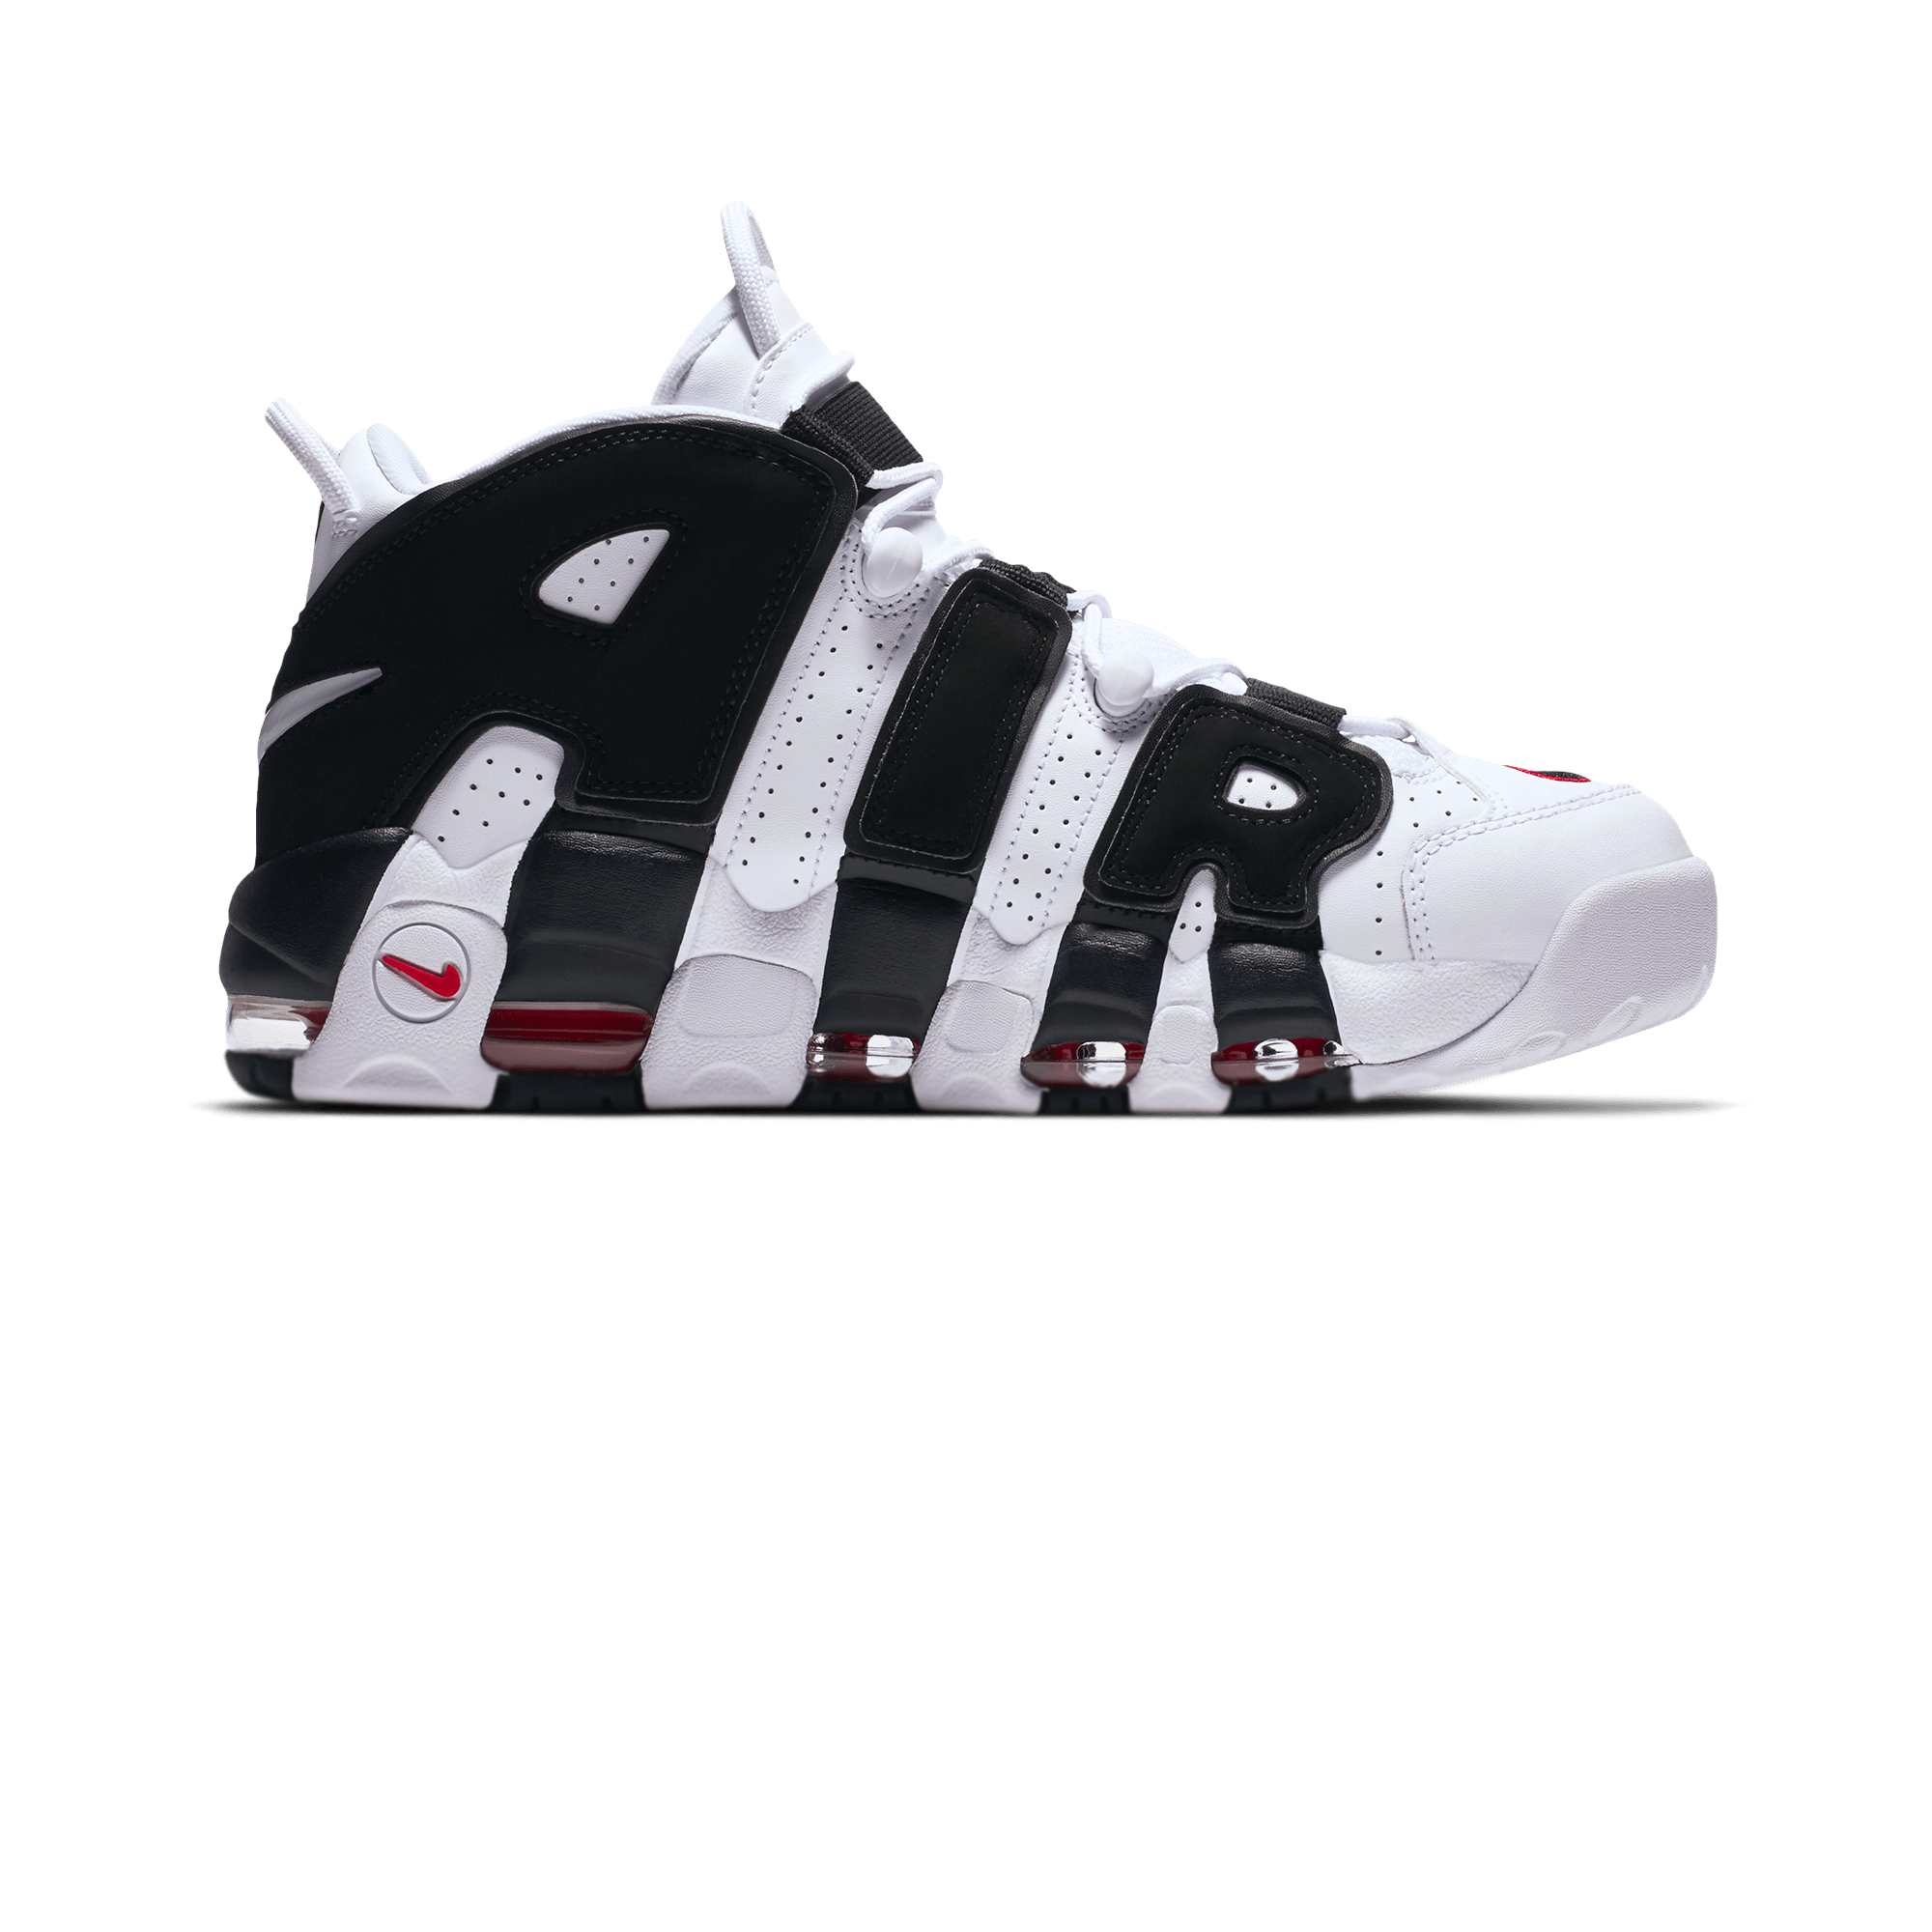 Air More Uptempo white/black/red